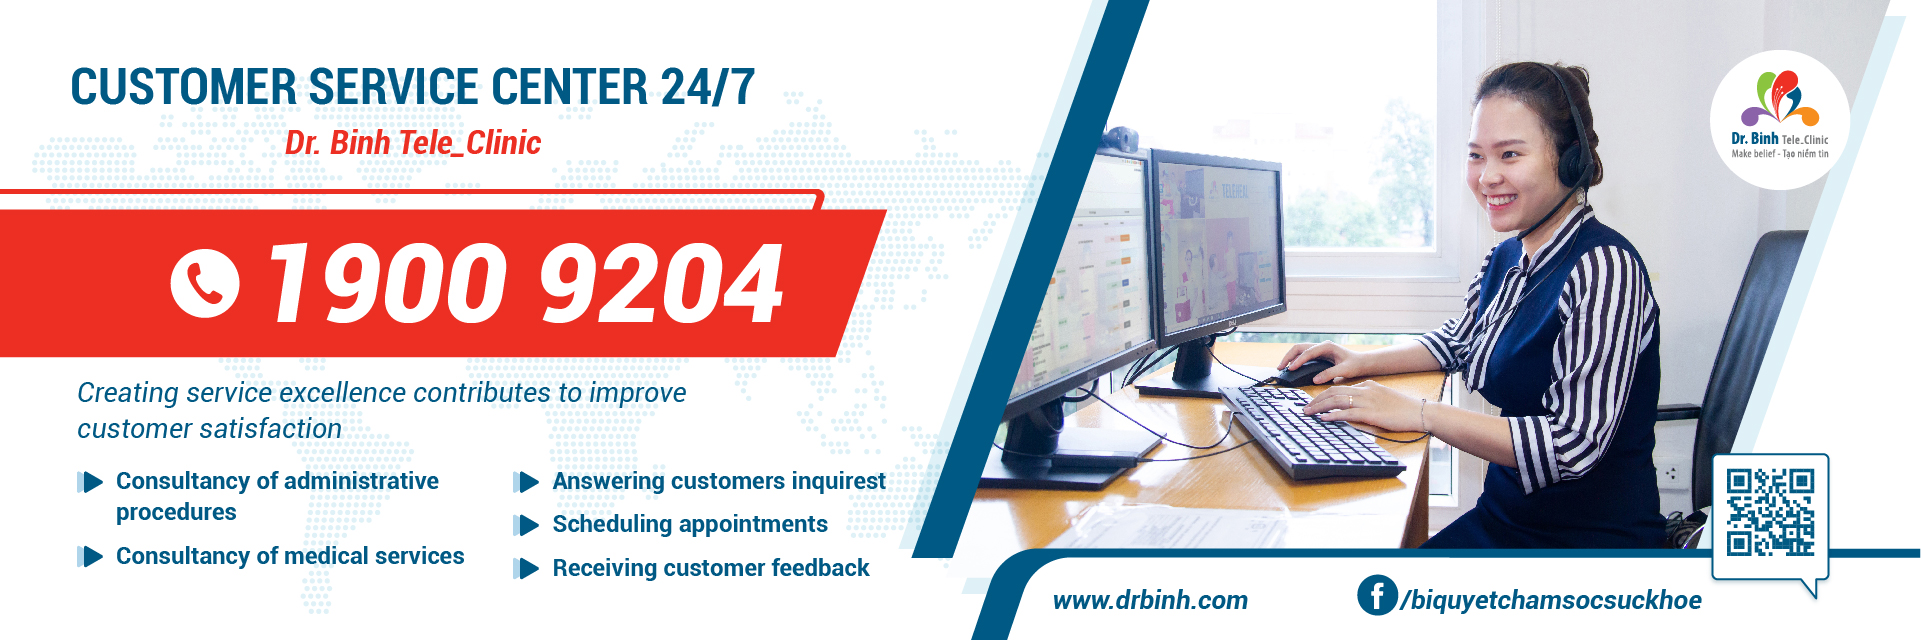 hotline-19009204-customer-service-telehealth-drbinh